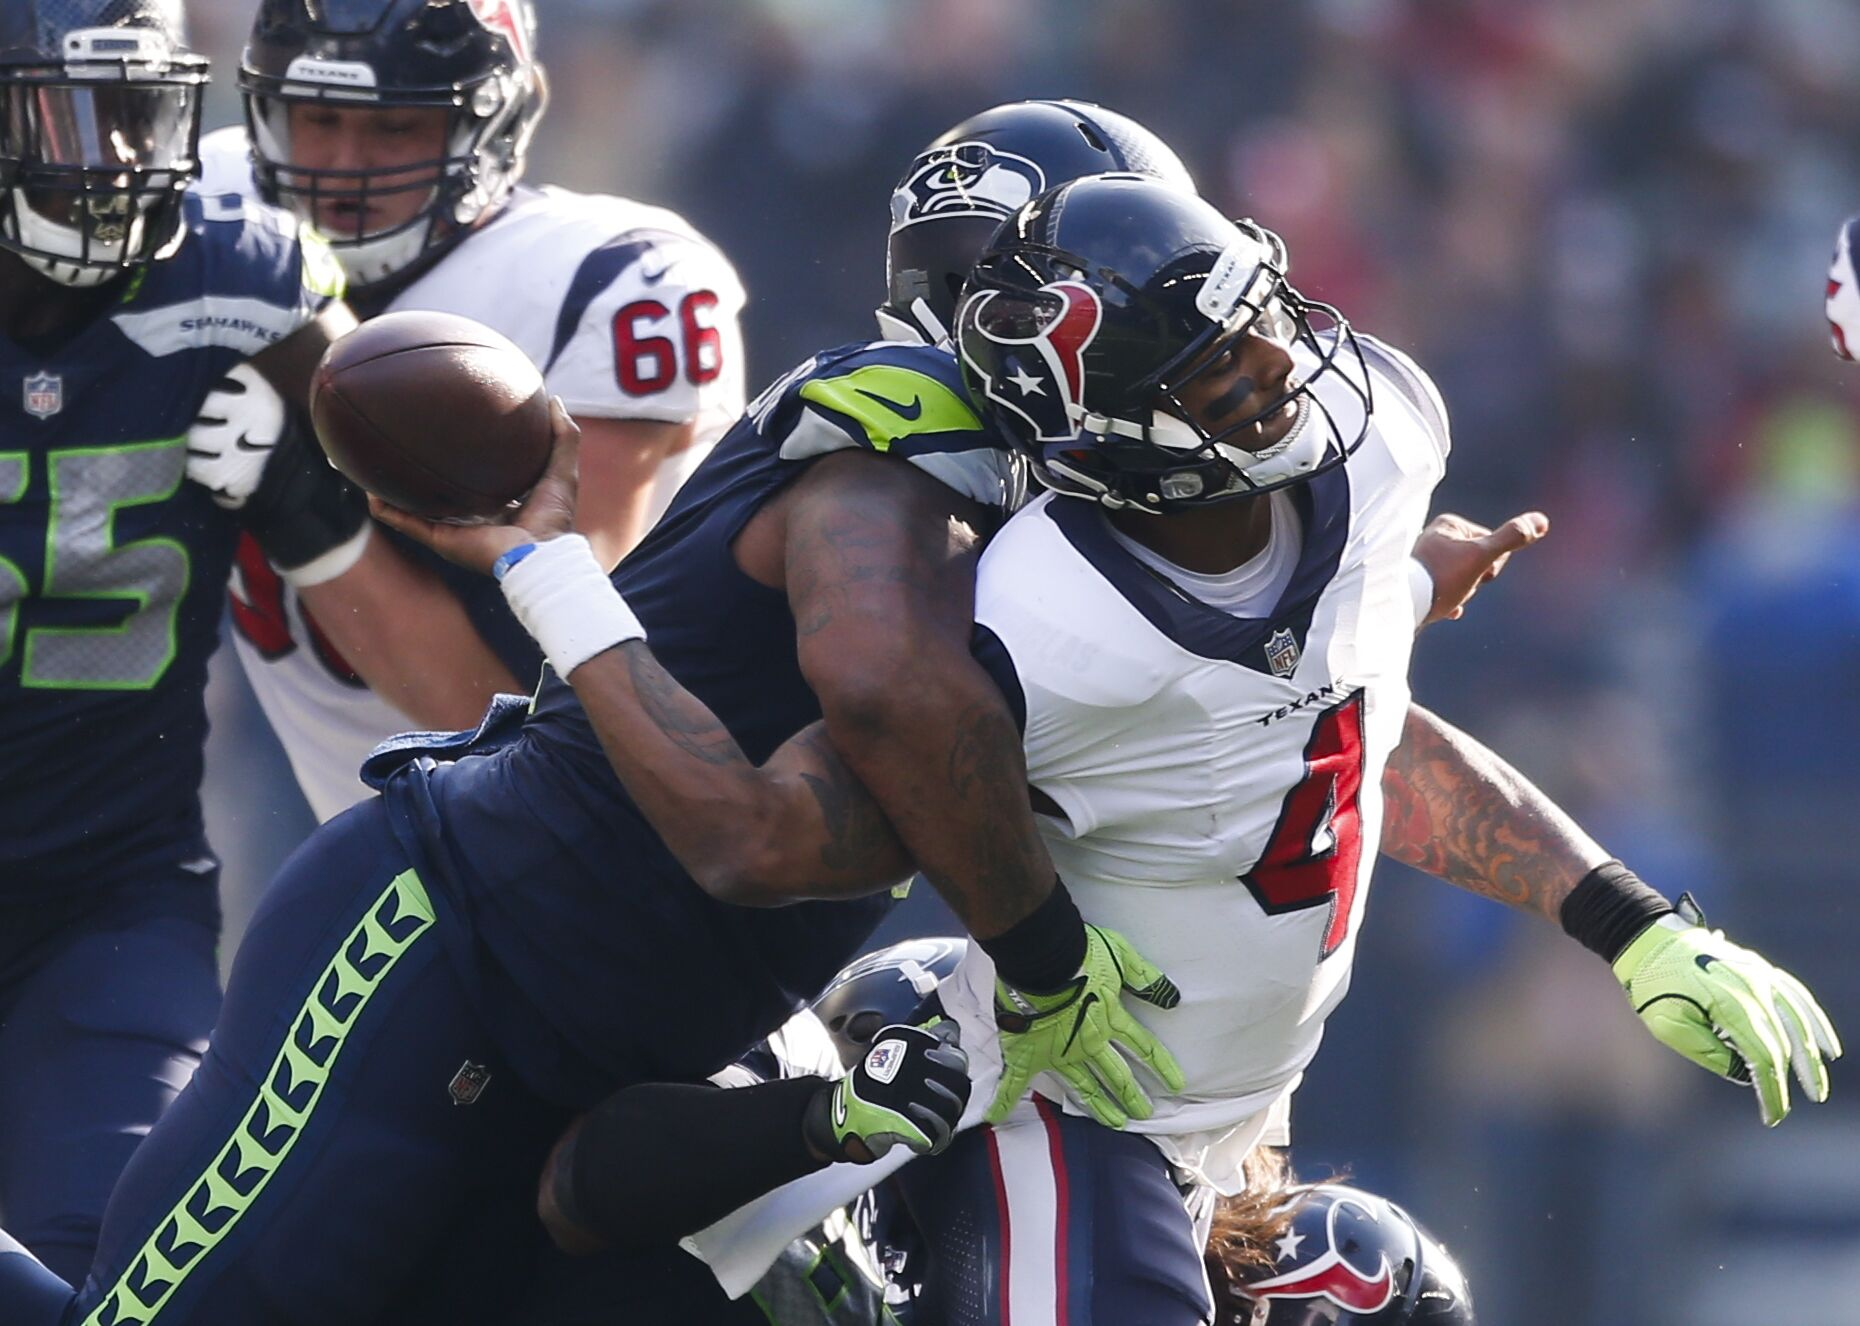 867927732-houston-texans-v-seattle-seahawks.jpg